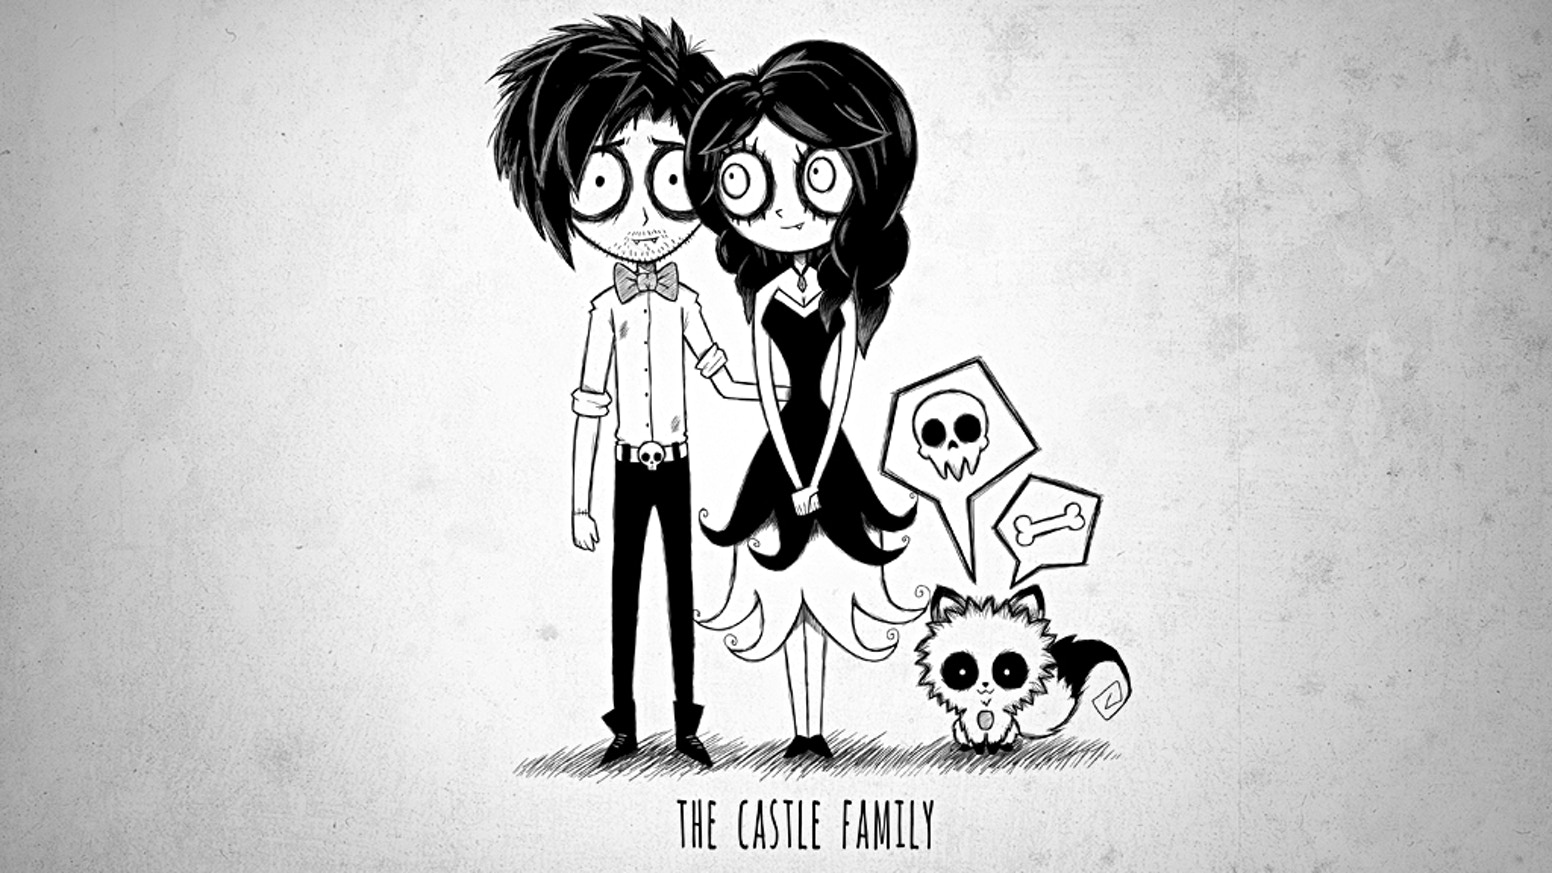 spooky family portraits stickers by luis kickstarter